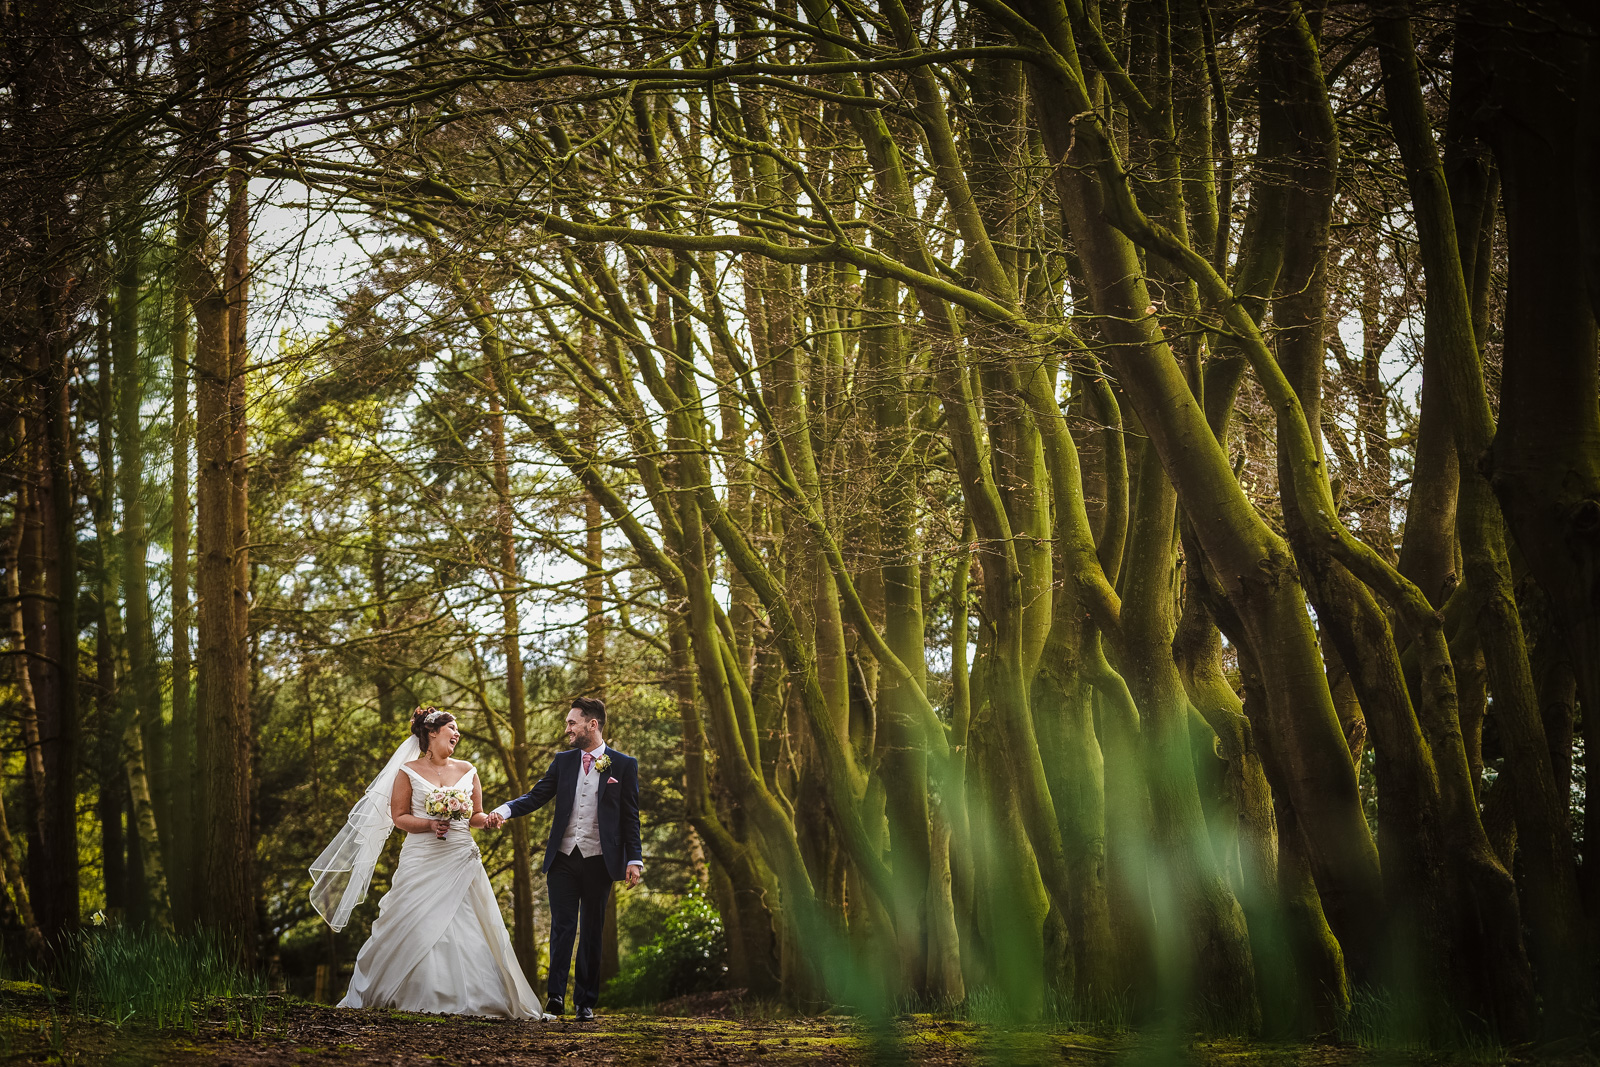 Jen & Ross's Nunsmere Hall Wedding